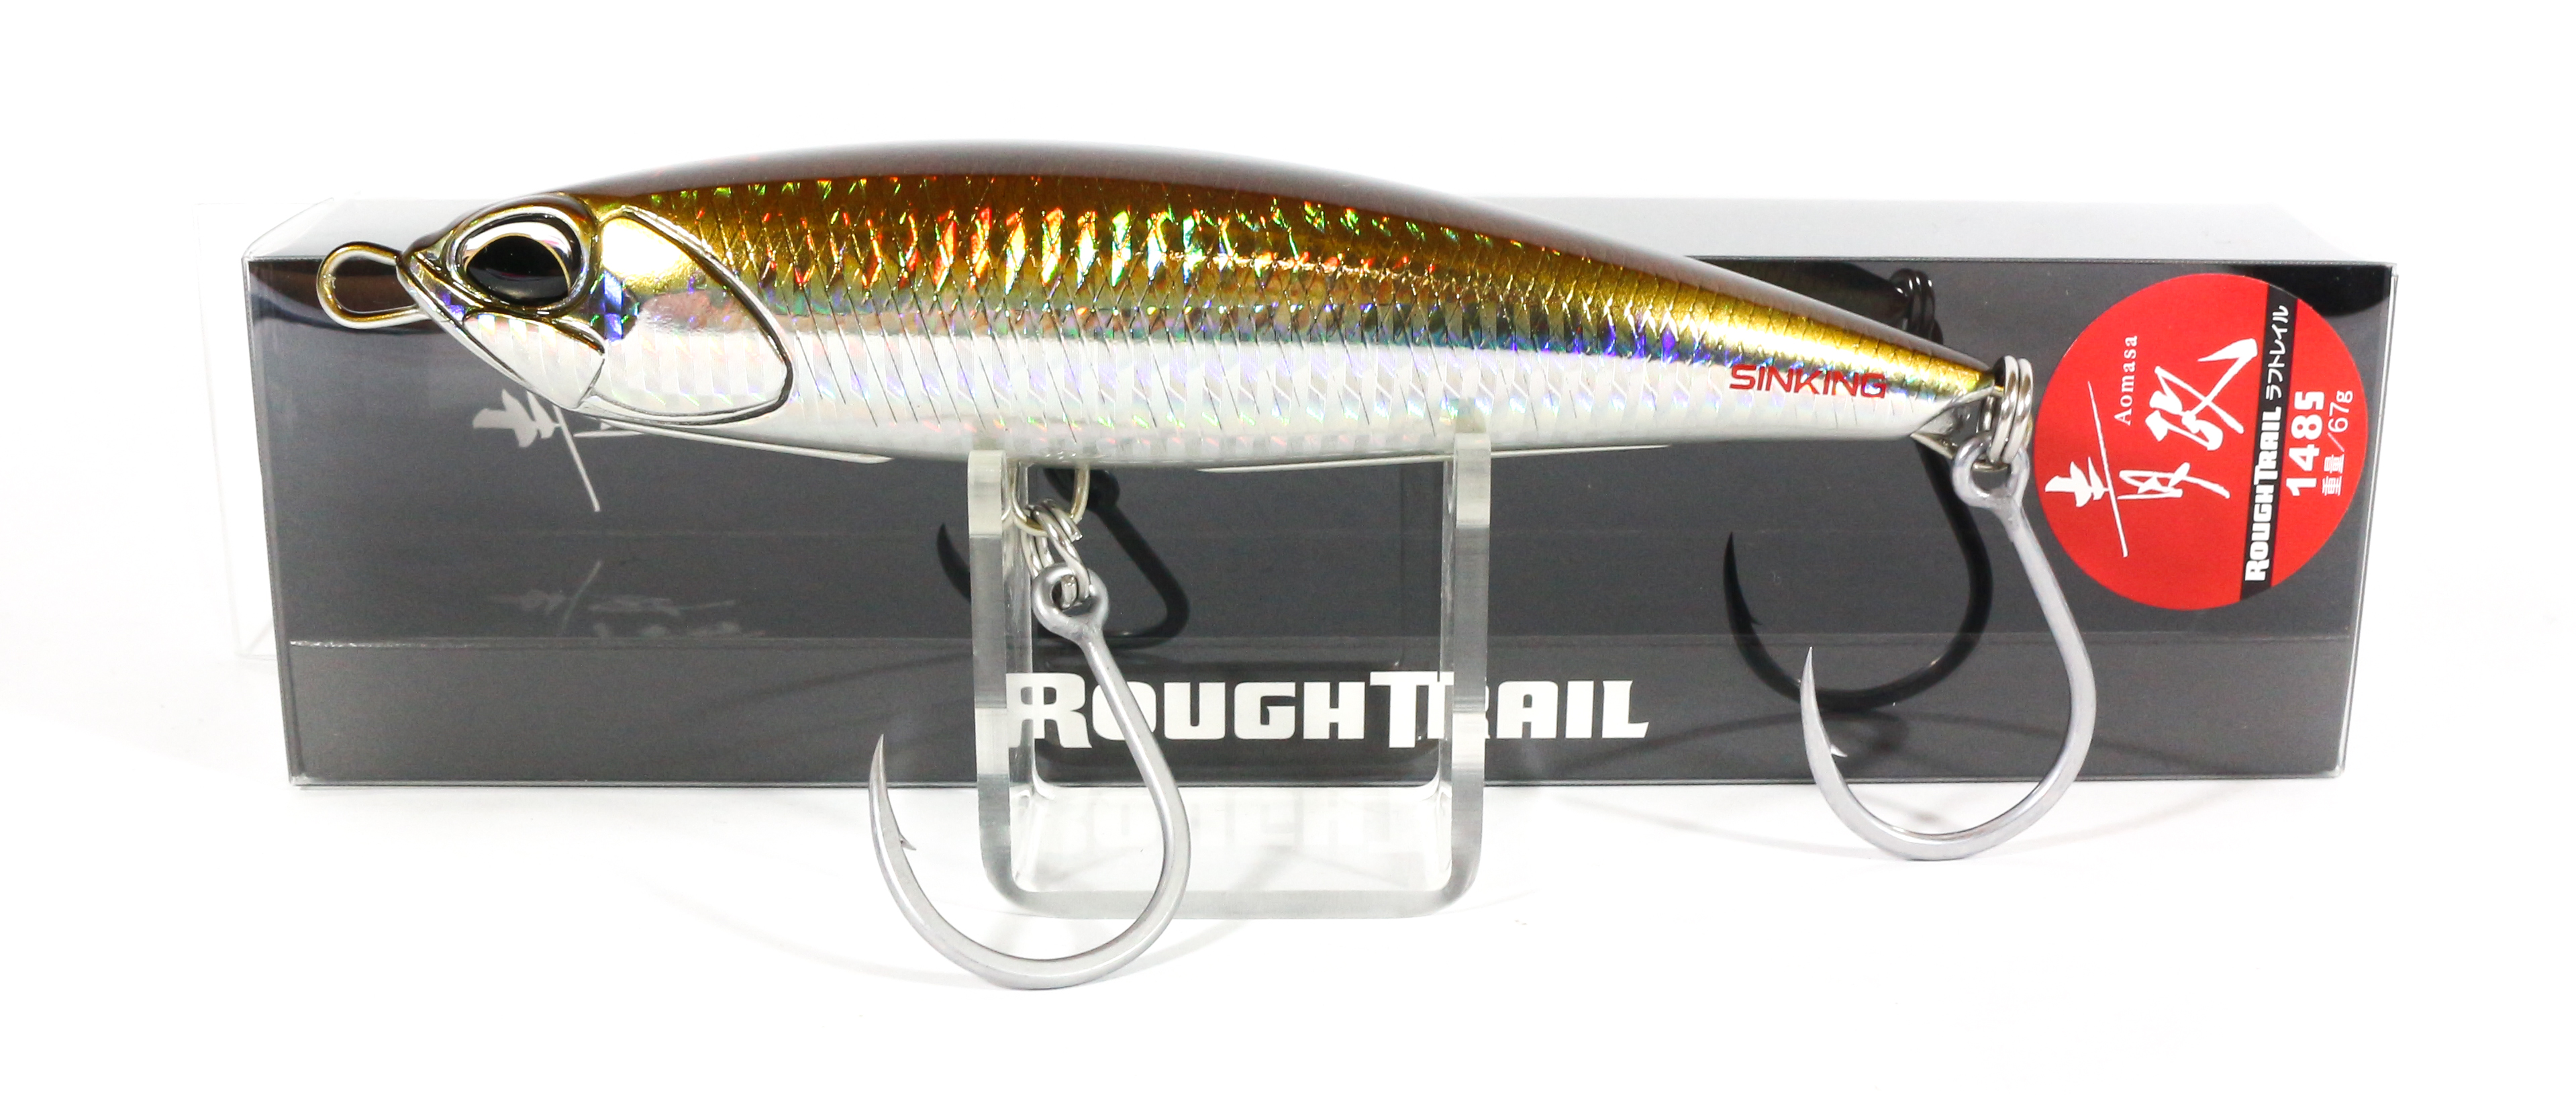 Duo Rough Trail Aomasa 148 Pencil 67 gram Sinking Lure GHA0153 (4715)